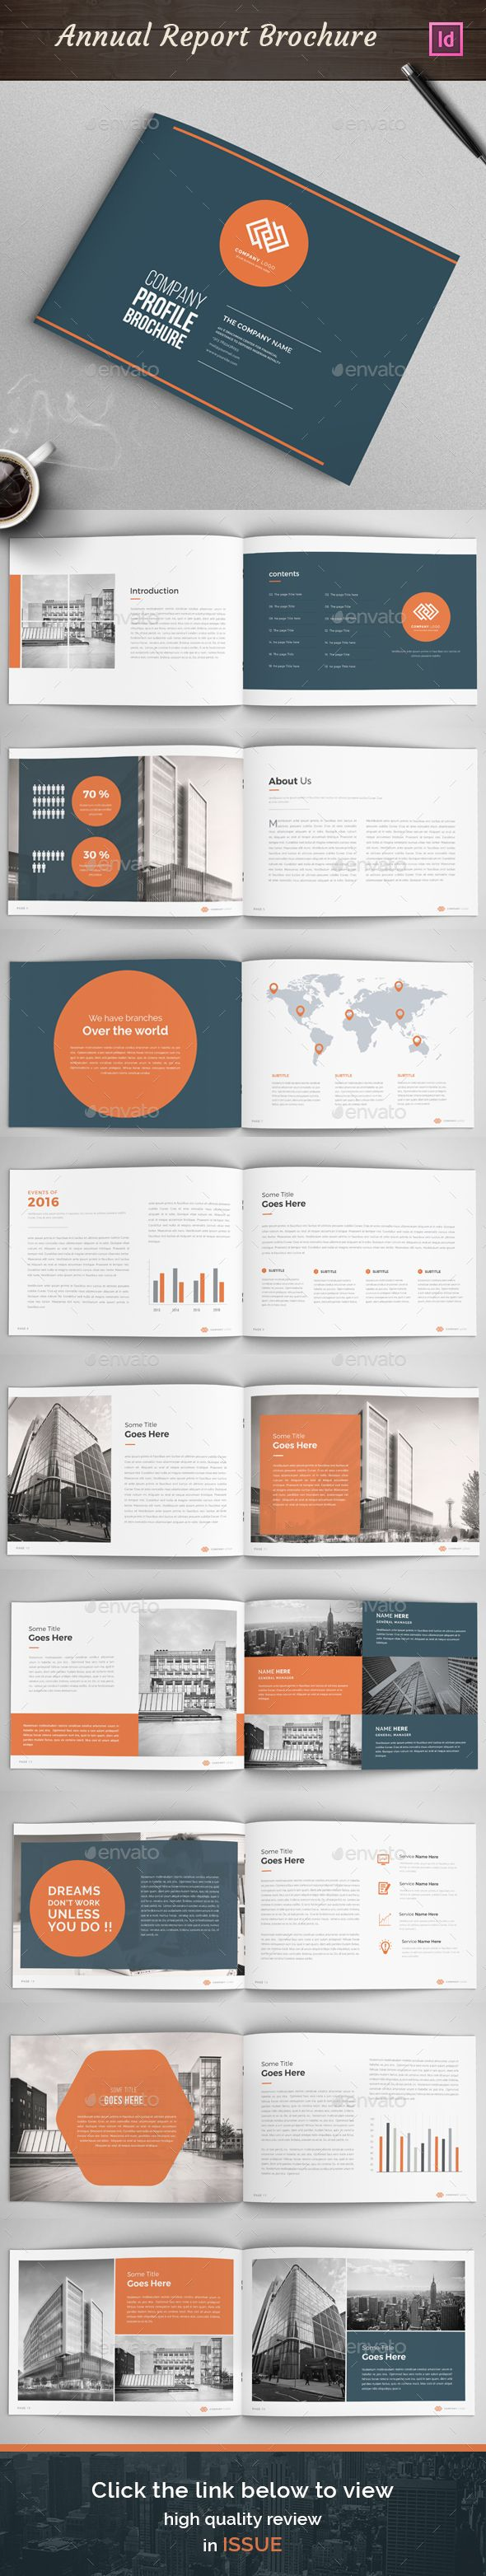 Company Profile Annual Report Template InDesign INDD. Download here: http://graphicriver.net/item/annual-report-company-profile/15670354?ref=ksioks